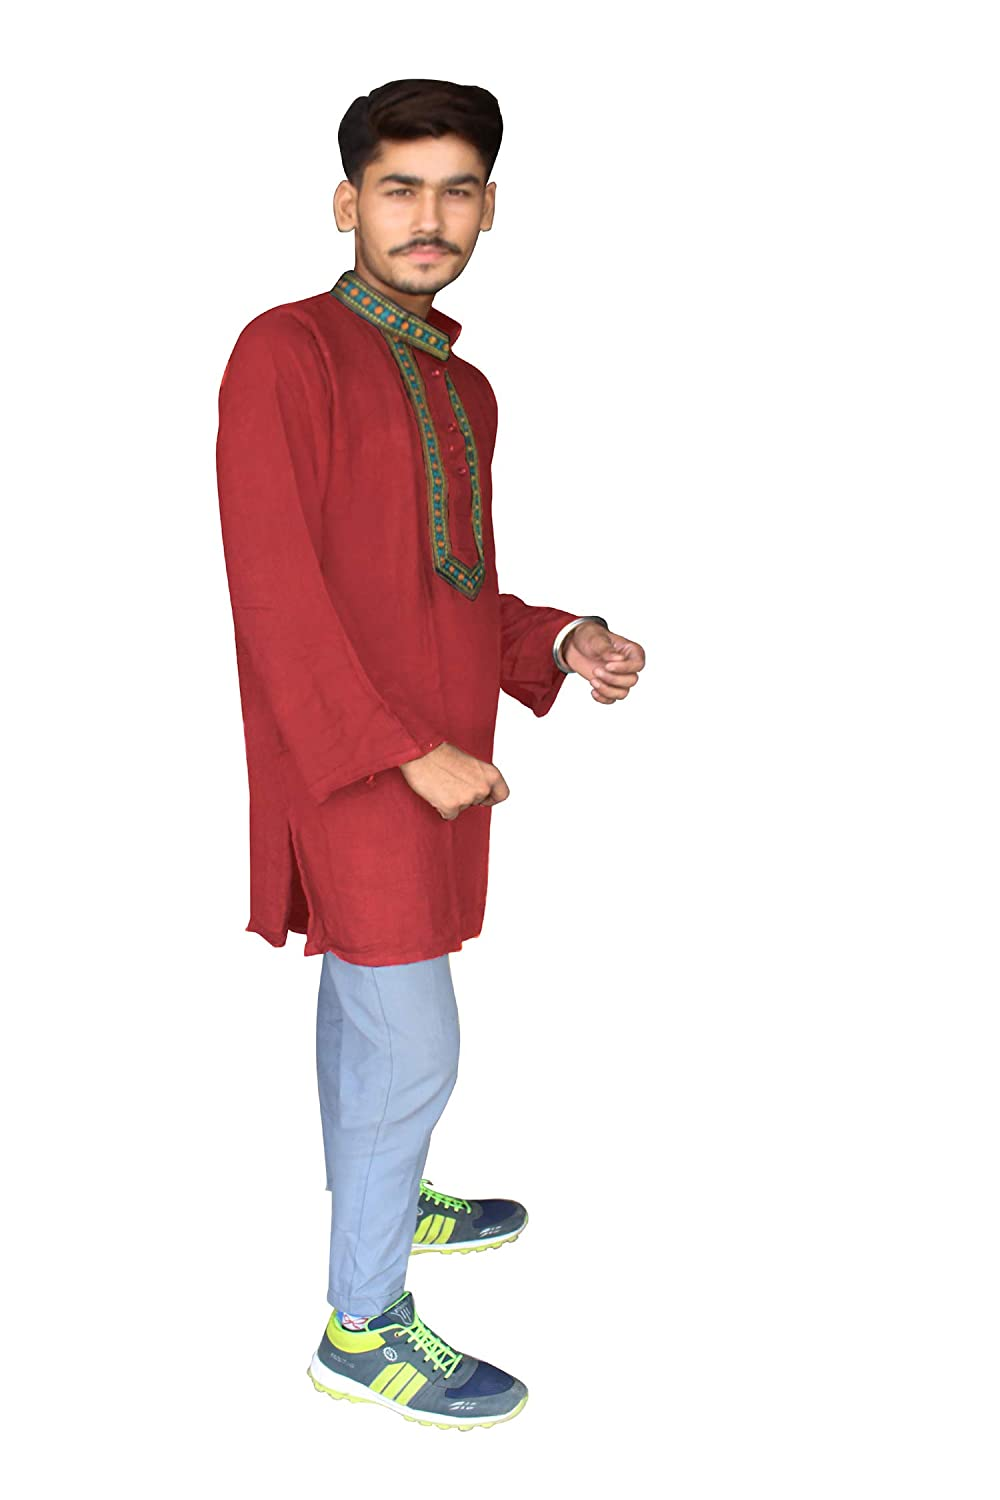 Lakkar Haveli Indian Mens Kurta Ethnic Embroidered Loose Fit Shirt Maroon Color Tunic Plus Size